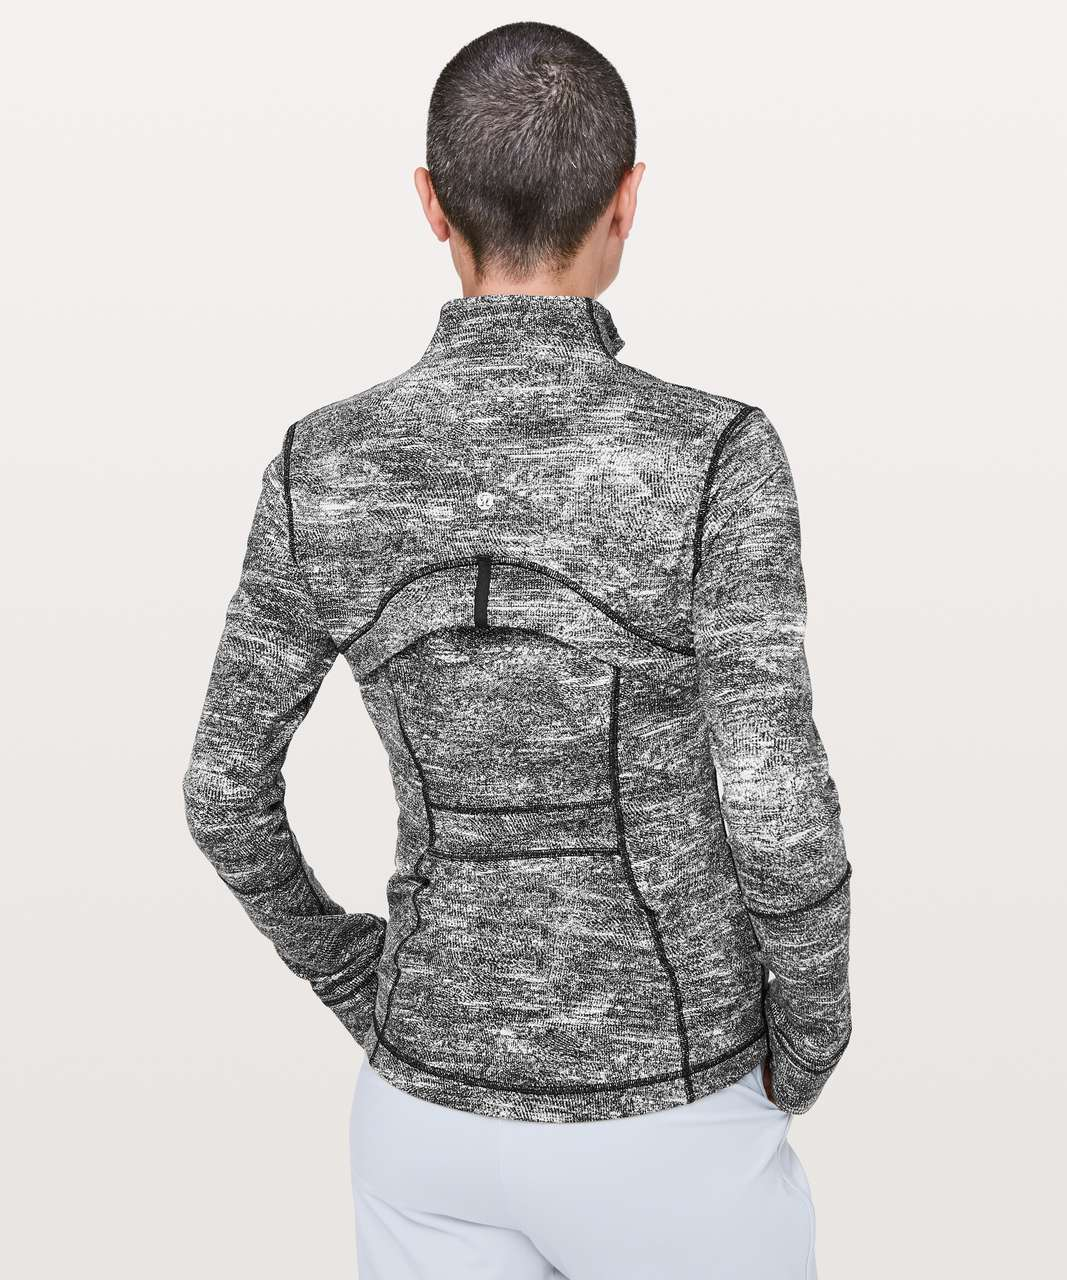 Lululemon Define Jacket - Rush Jacquard Black White